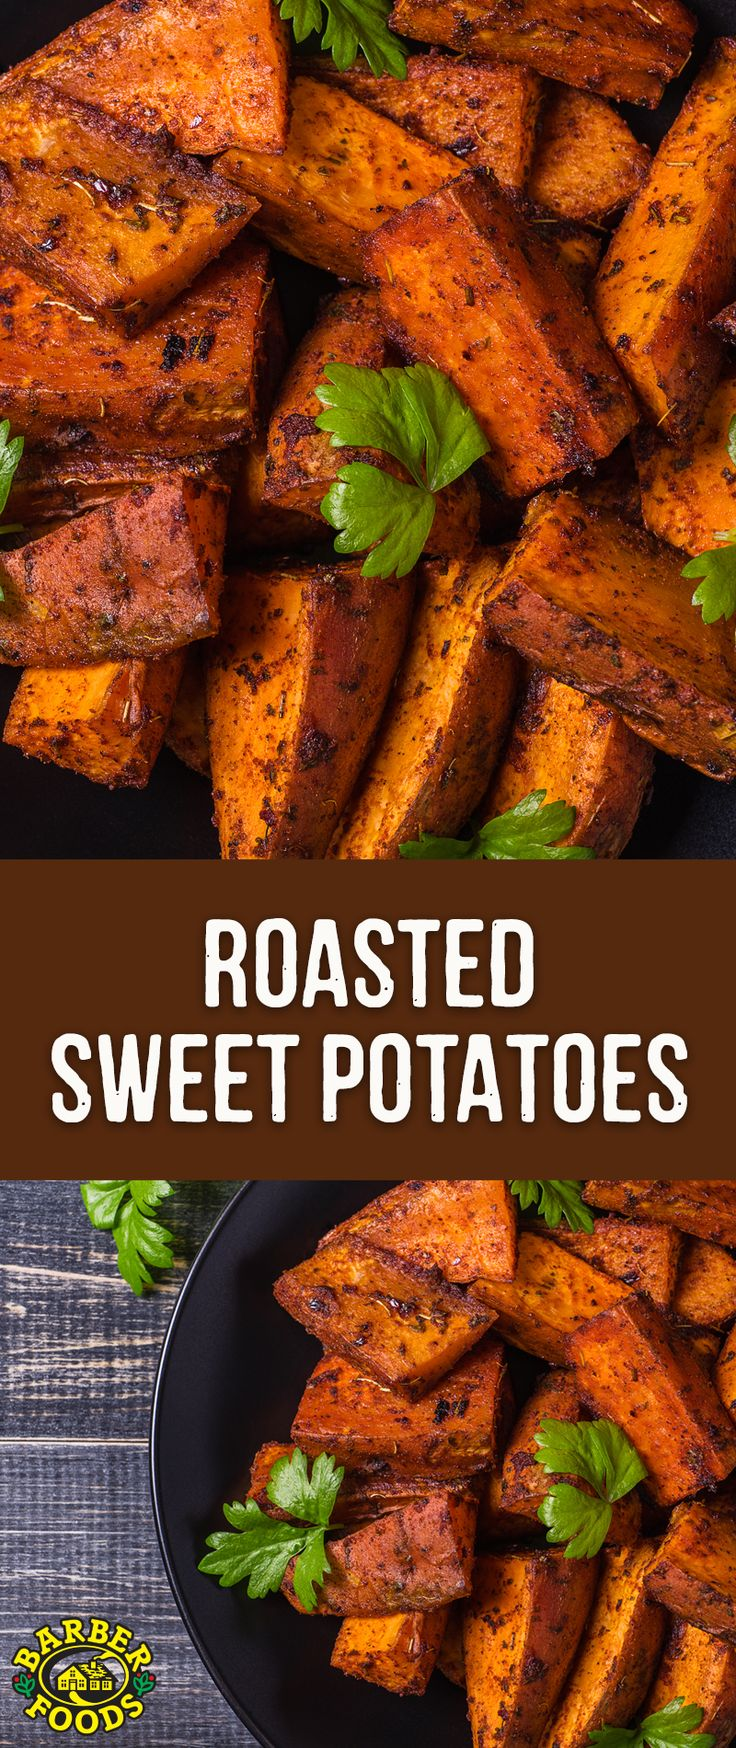 Roasted sweet potatoes go great with our stuffed chicken breasts! #barbernight